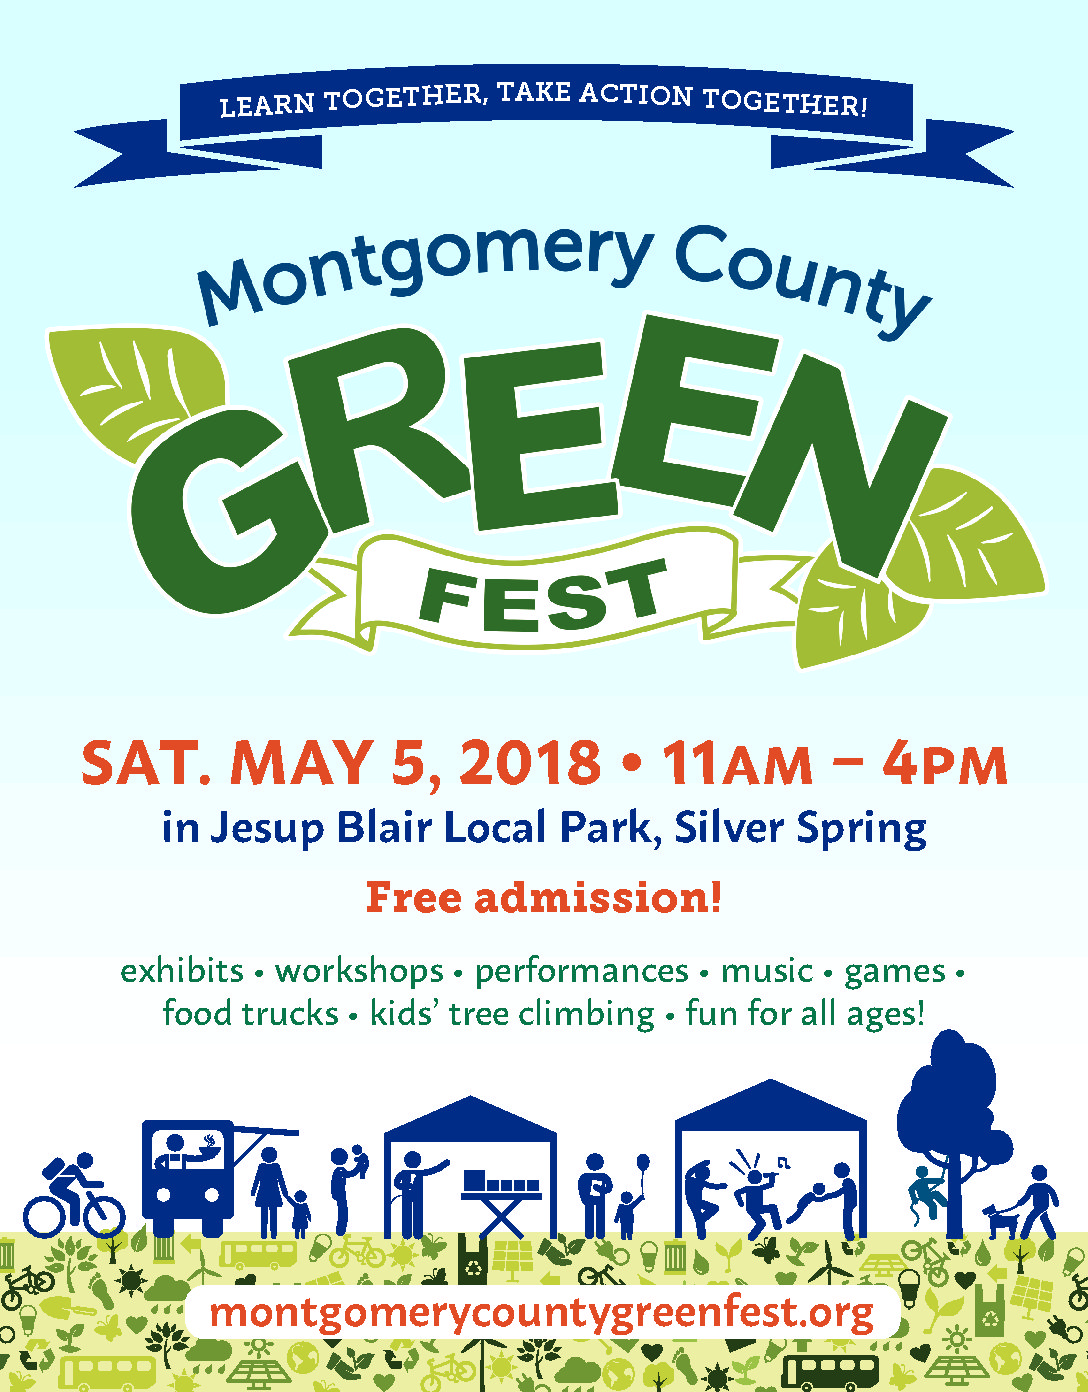 Montgomery County Greenfest